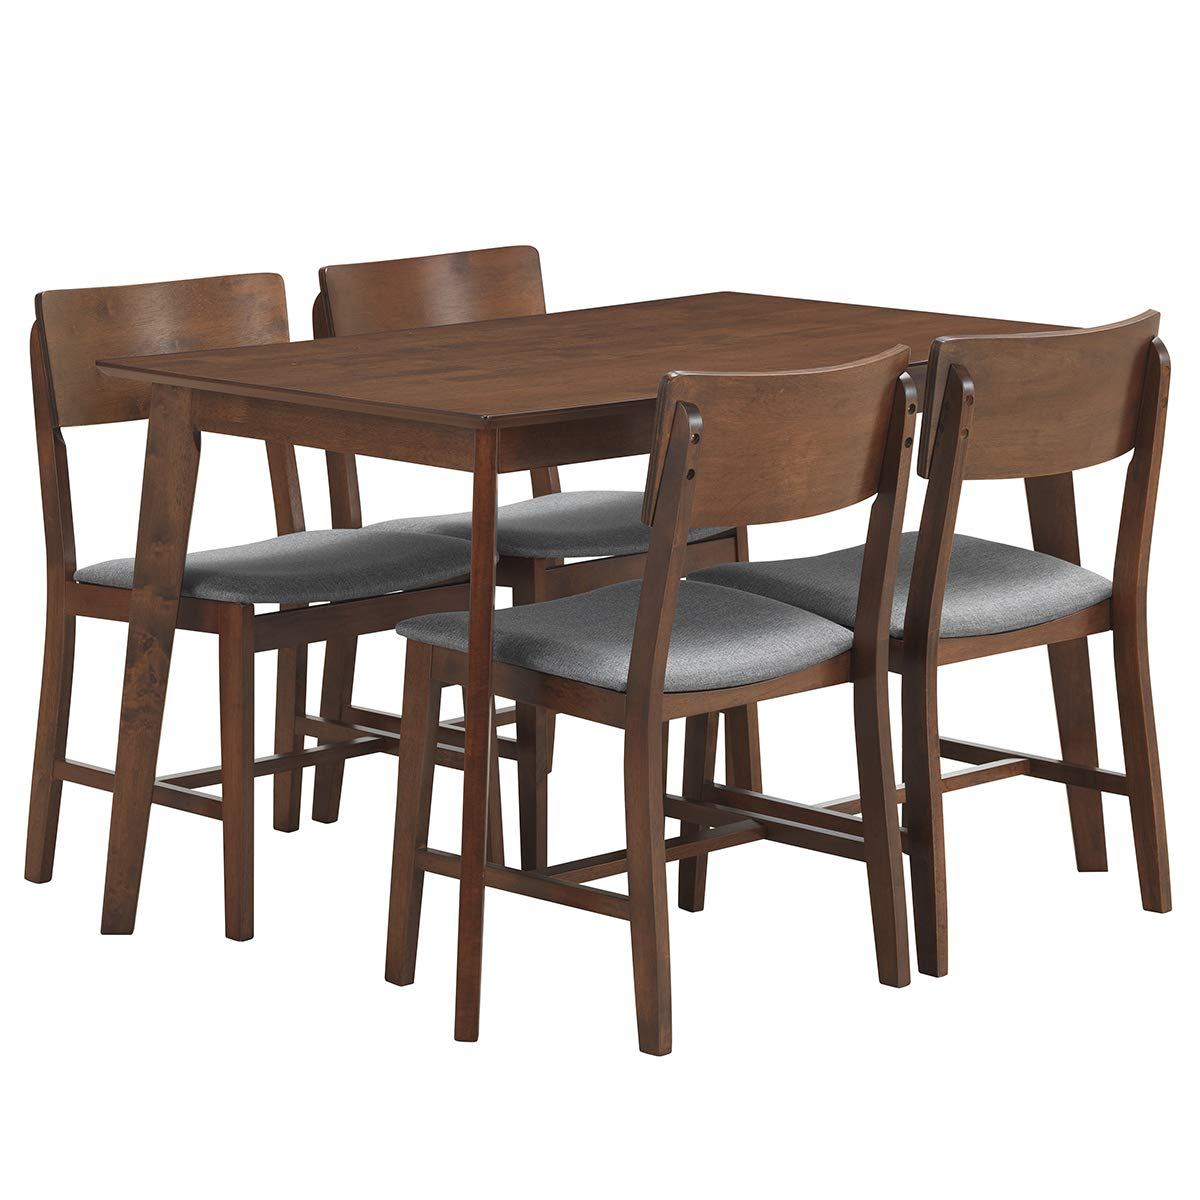 Amazon com giantex 5 piece dining table set with 4 chairs upholstered seat mid century modern kitchen wood large dining room sets gray table chair